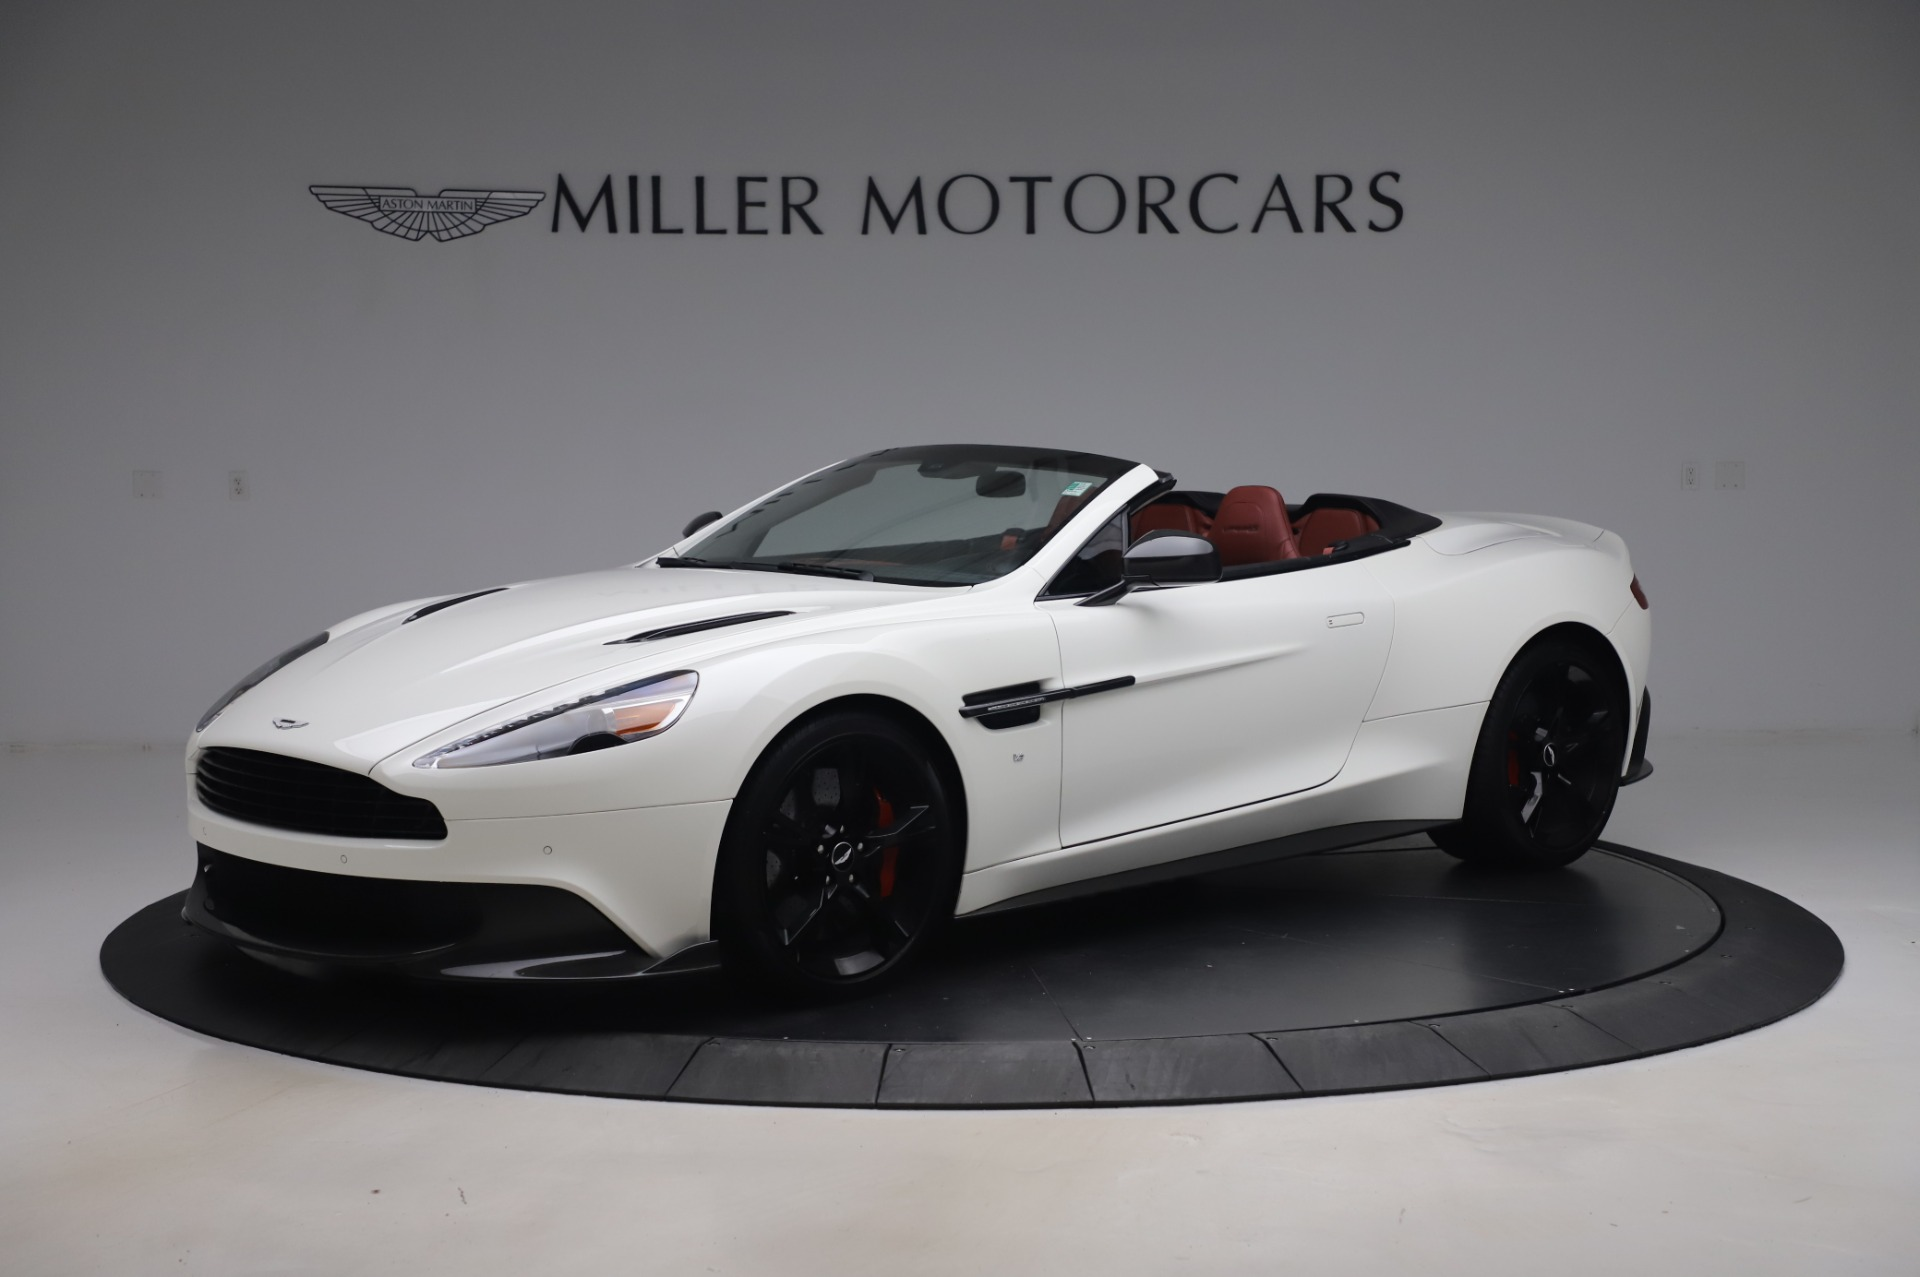 Used 2018 Aston Martin Vanquish S Volante for sale $193,900 at Aston Martin of Greenwich in Greenwich CT 06830 1